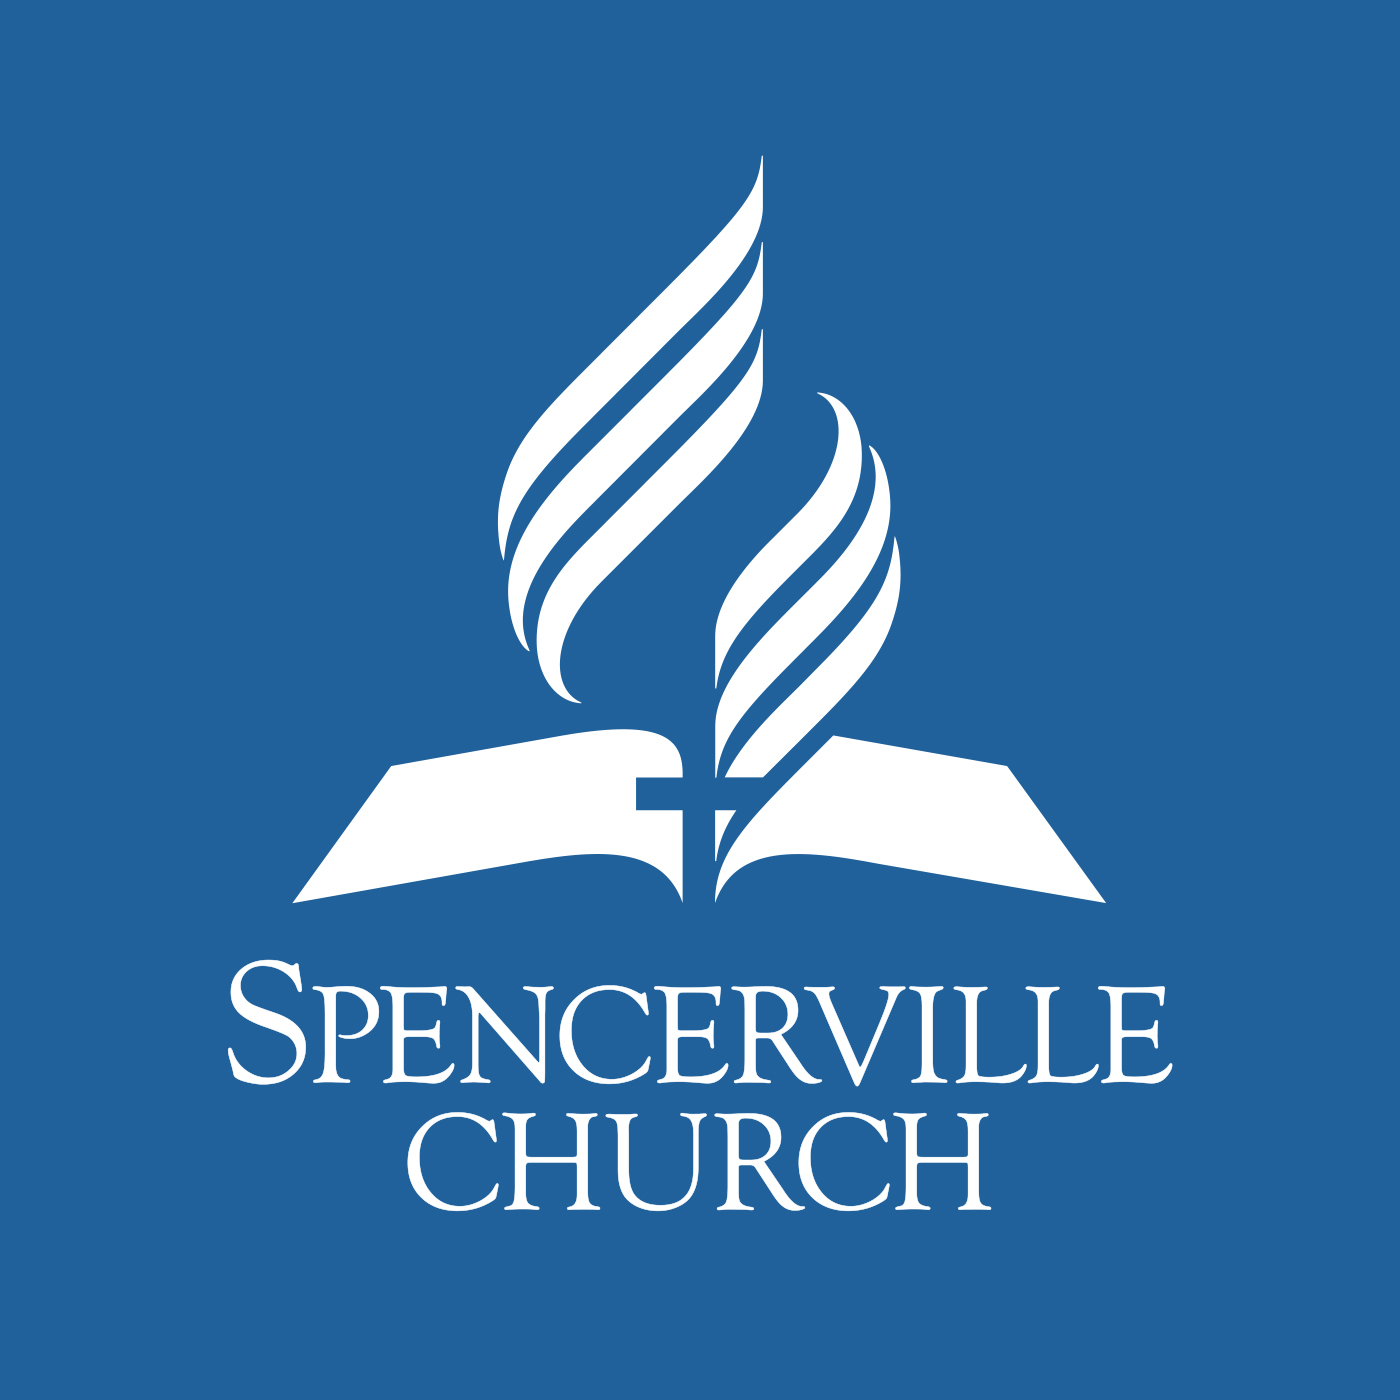 Spencerville Church